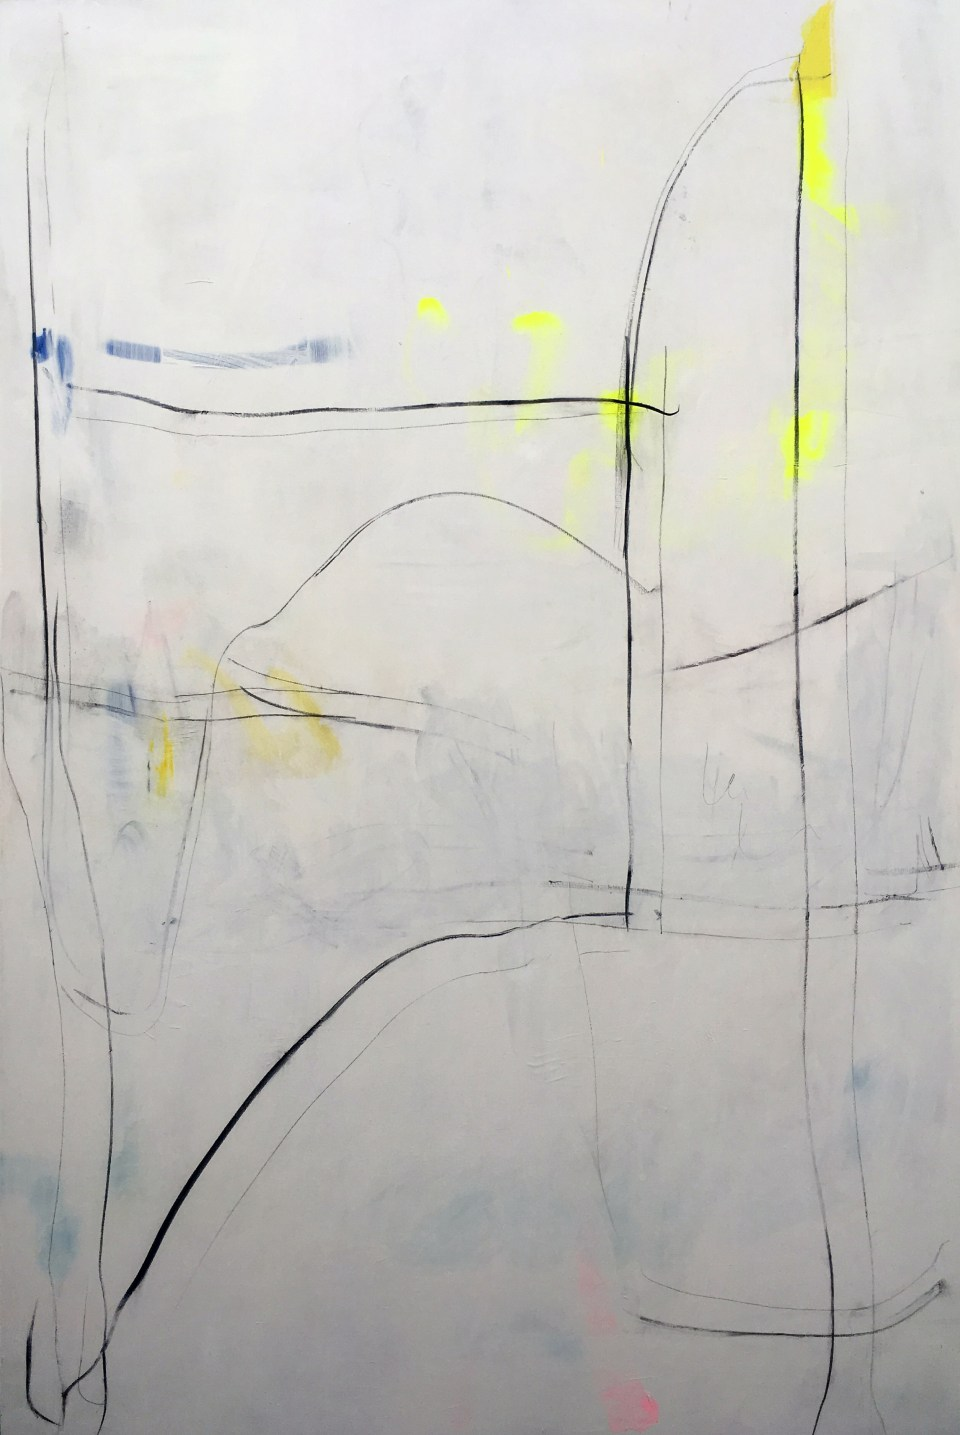 ALISON MCKENNA Untitled 2017, Acrylic, house paint, spray paint, charcoal and pencil on linen, 193 x 130cm